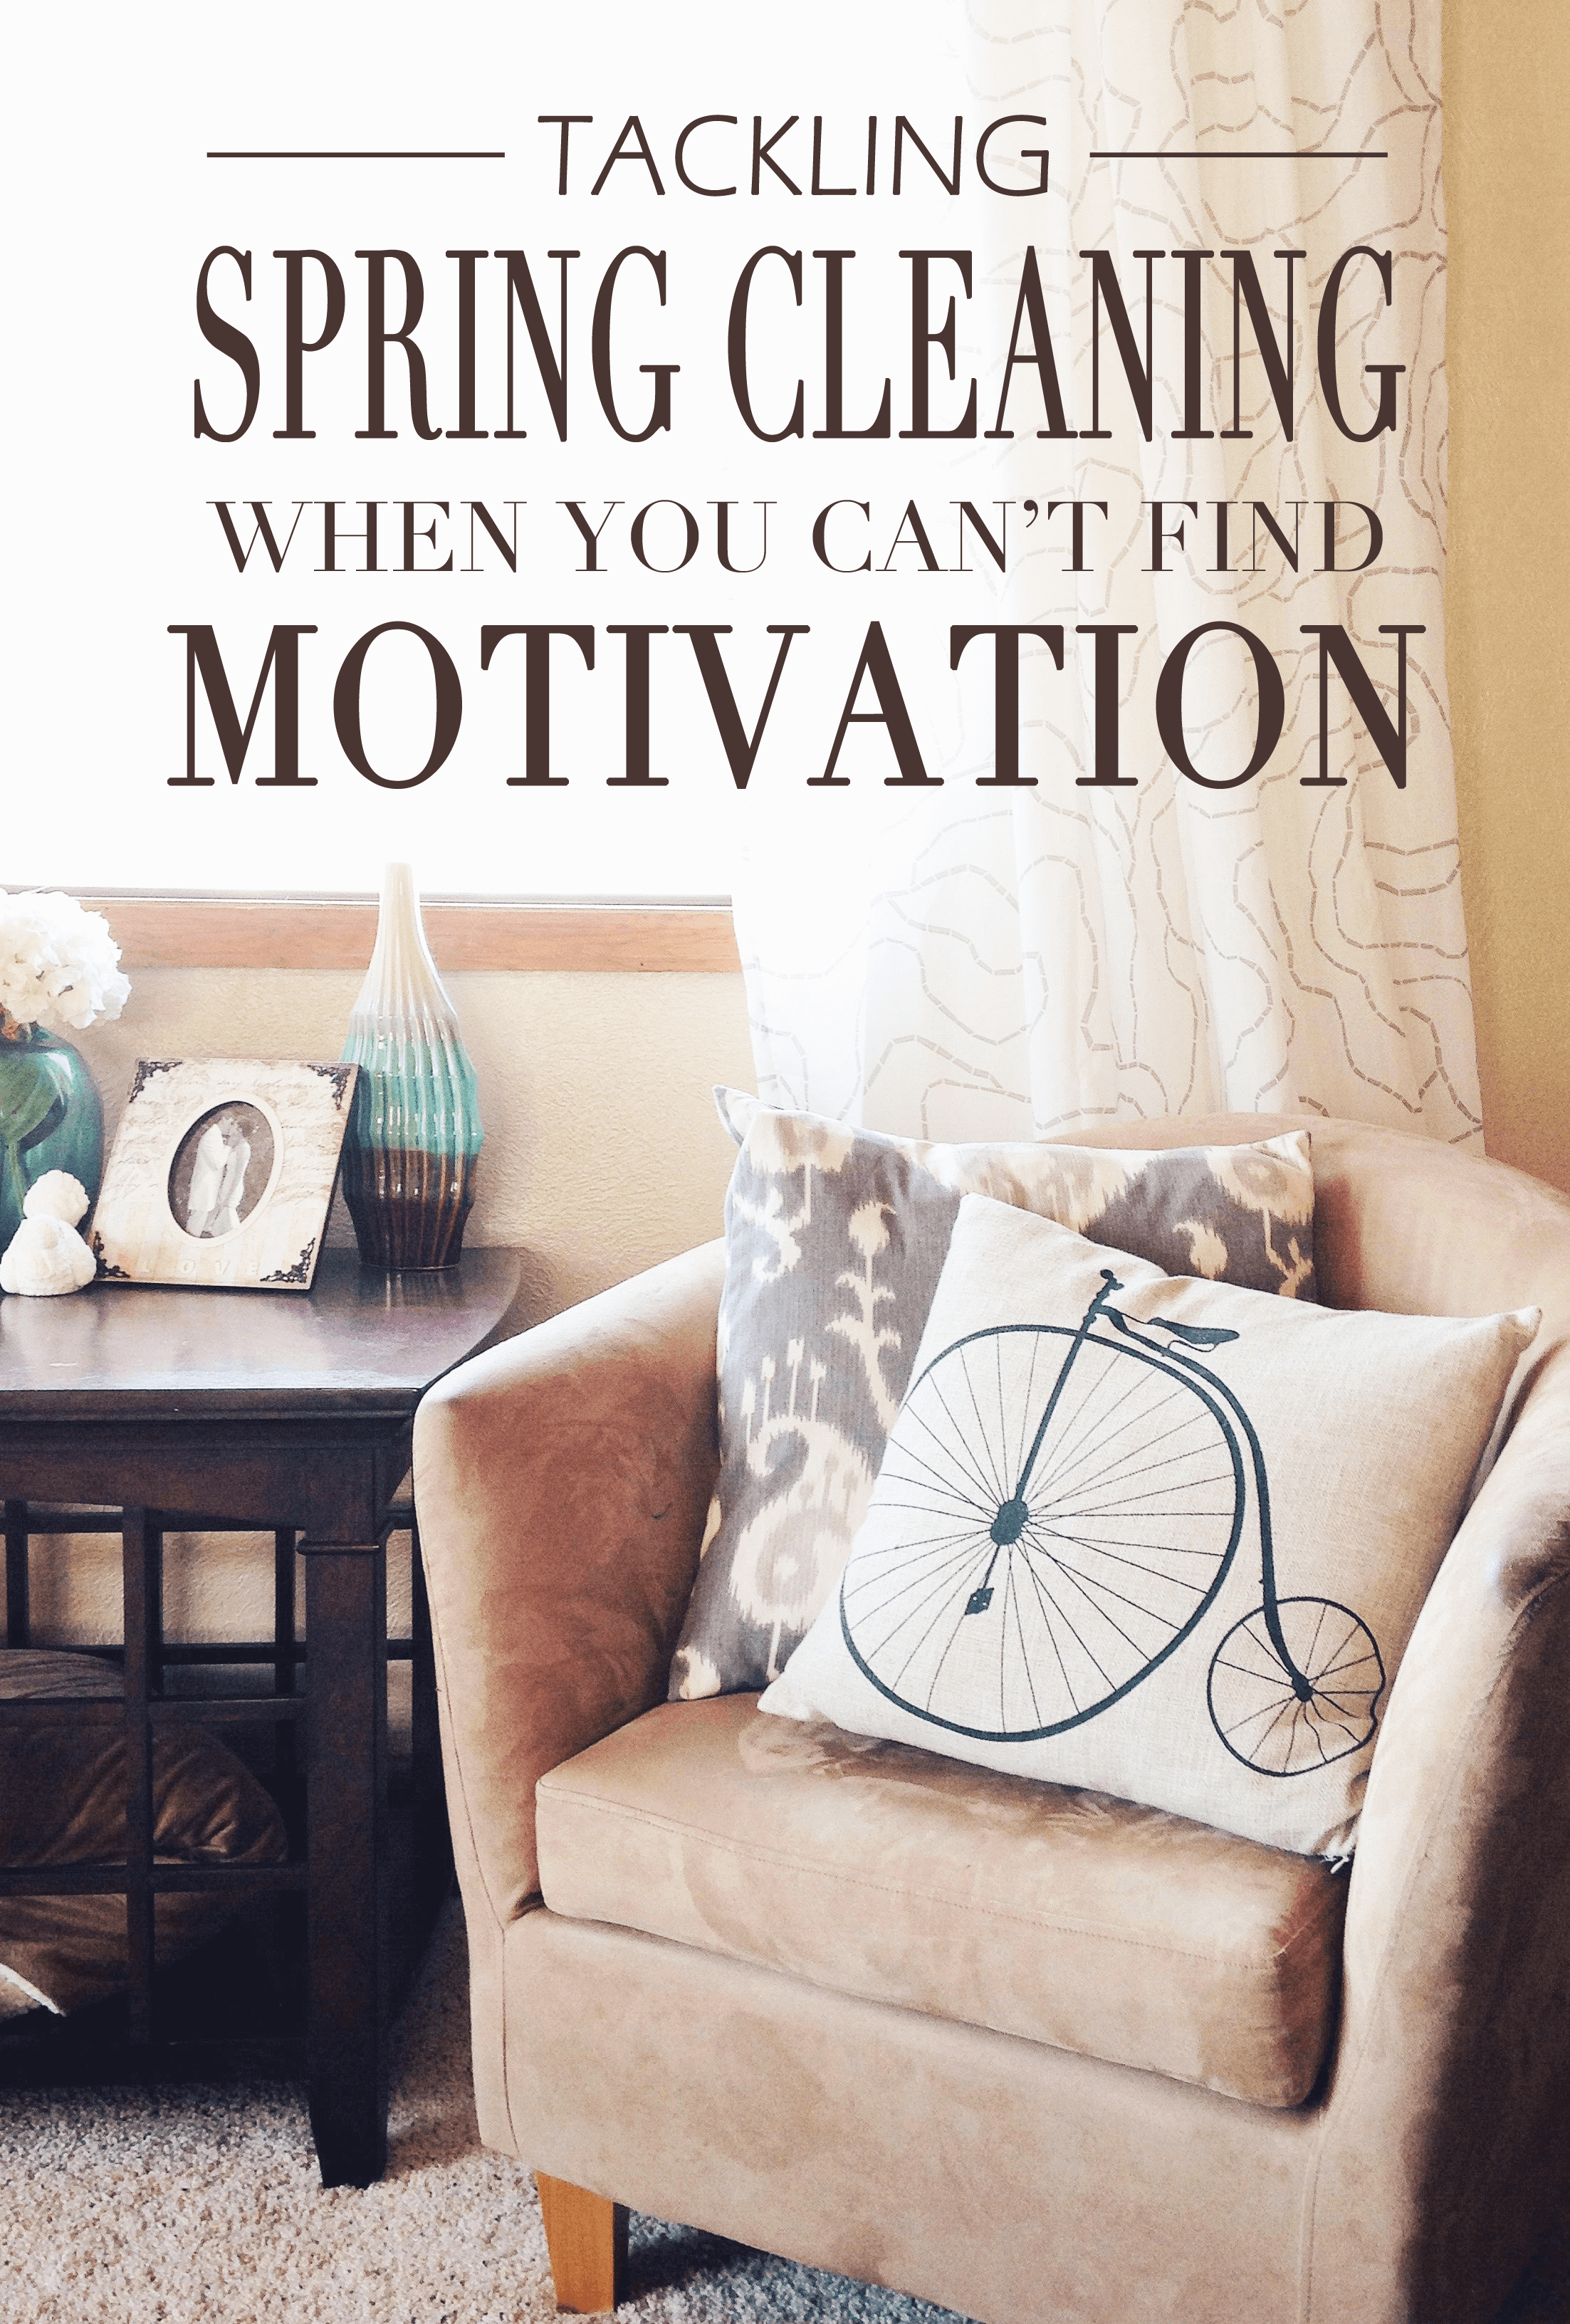 tackling-spring-cleaning-when-you-cant-find-motivation